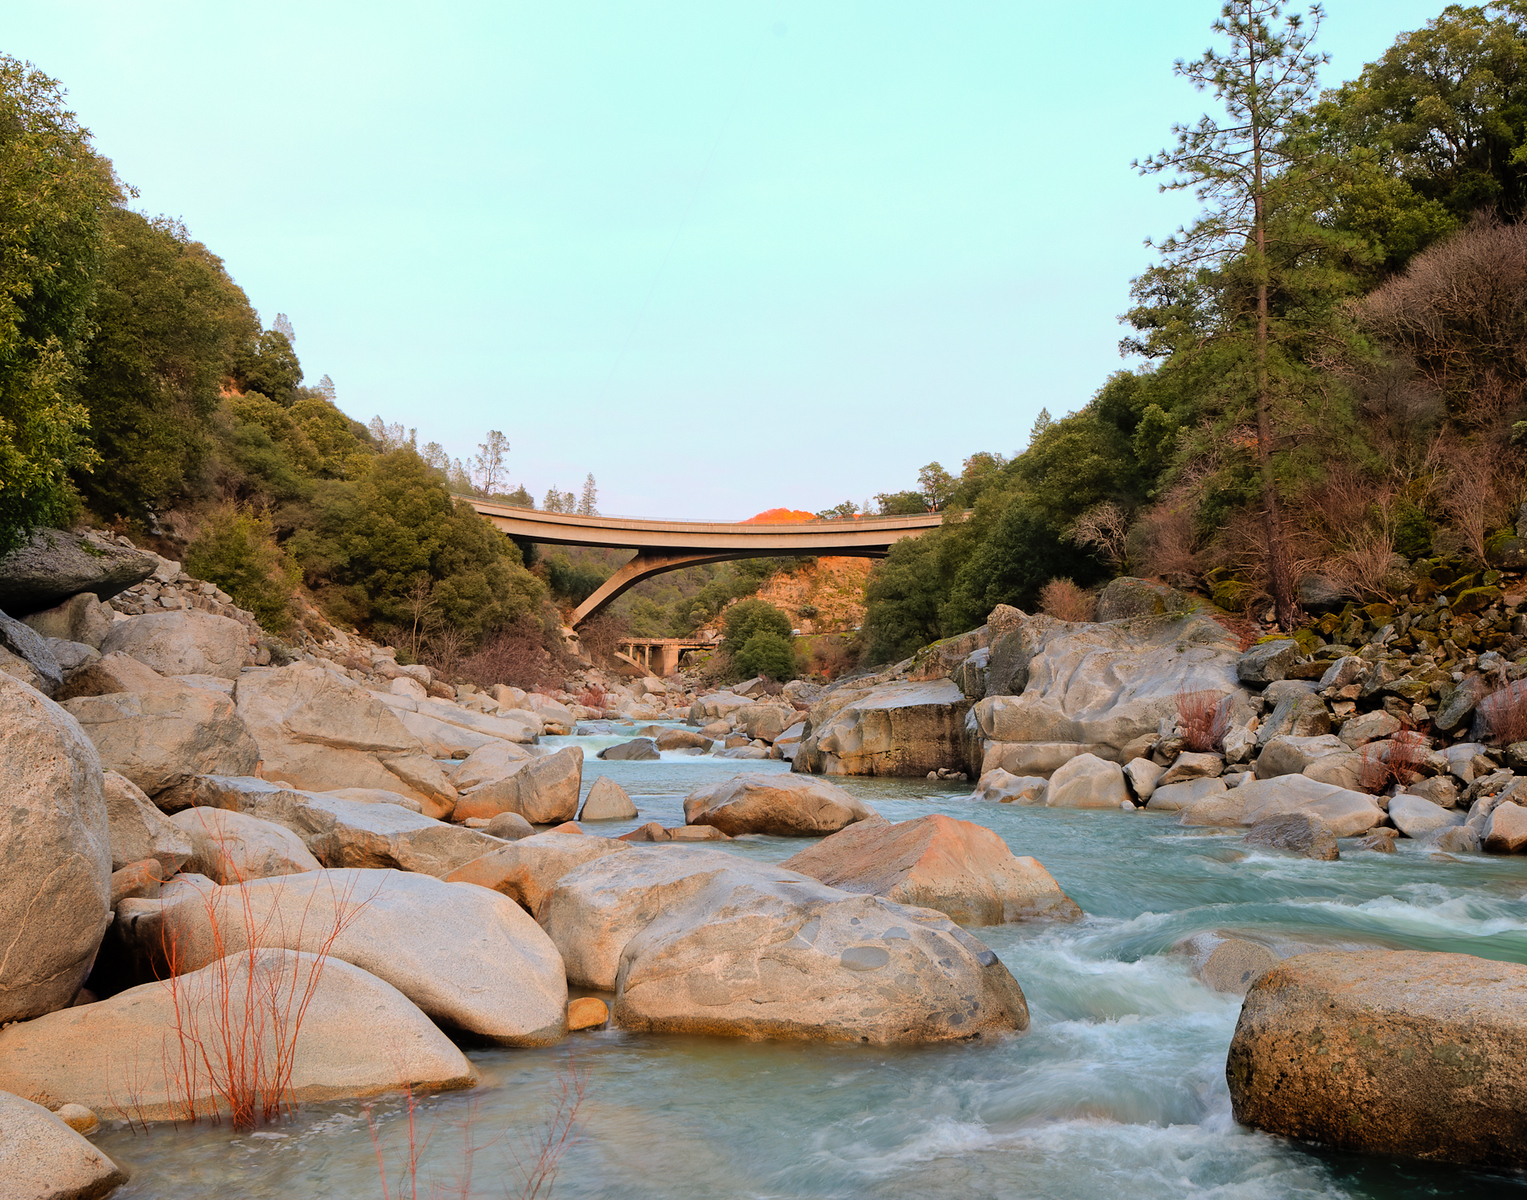 The new and old bridges, HWY 49, and South Yuba River